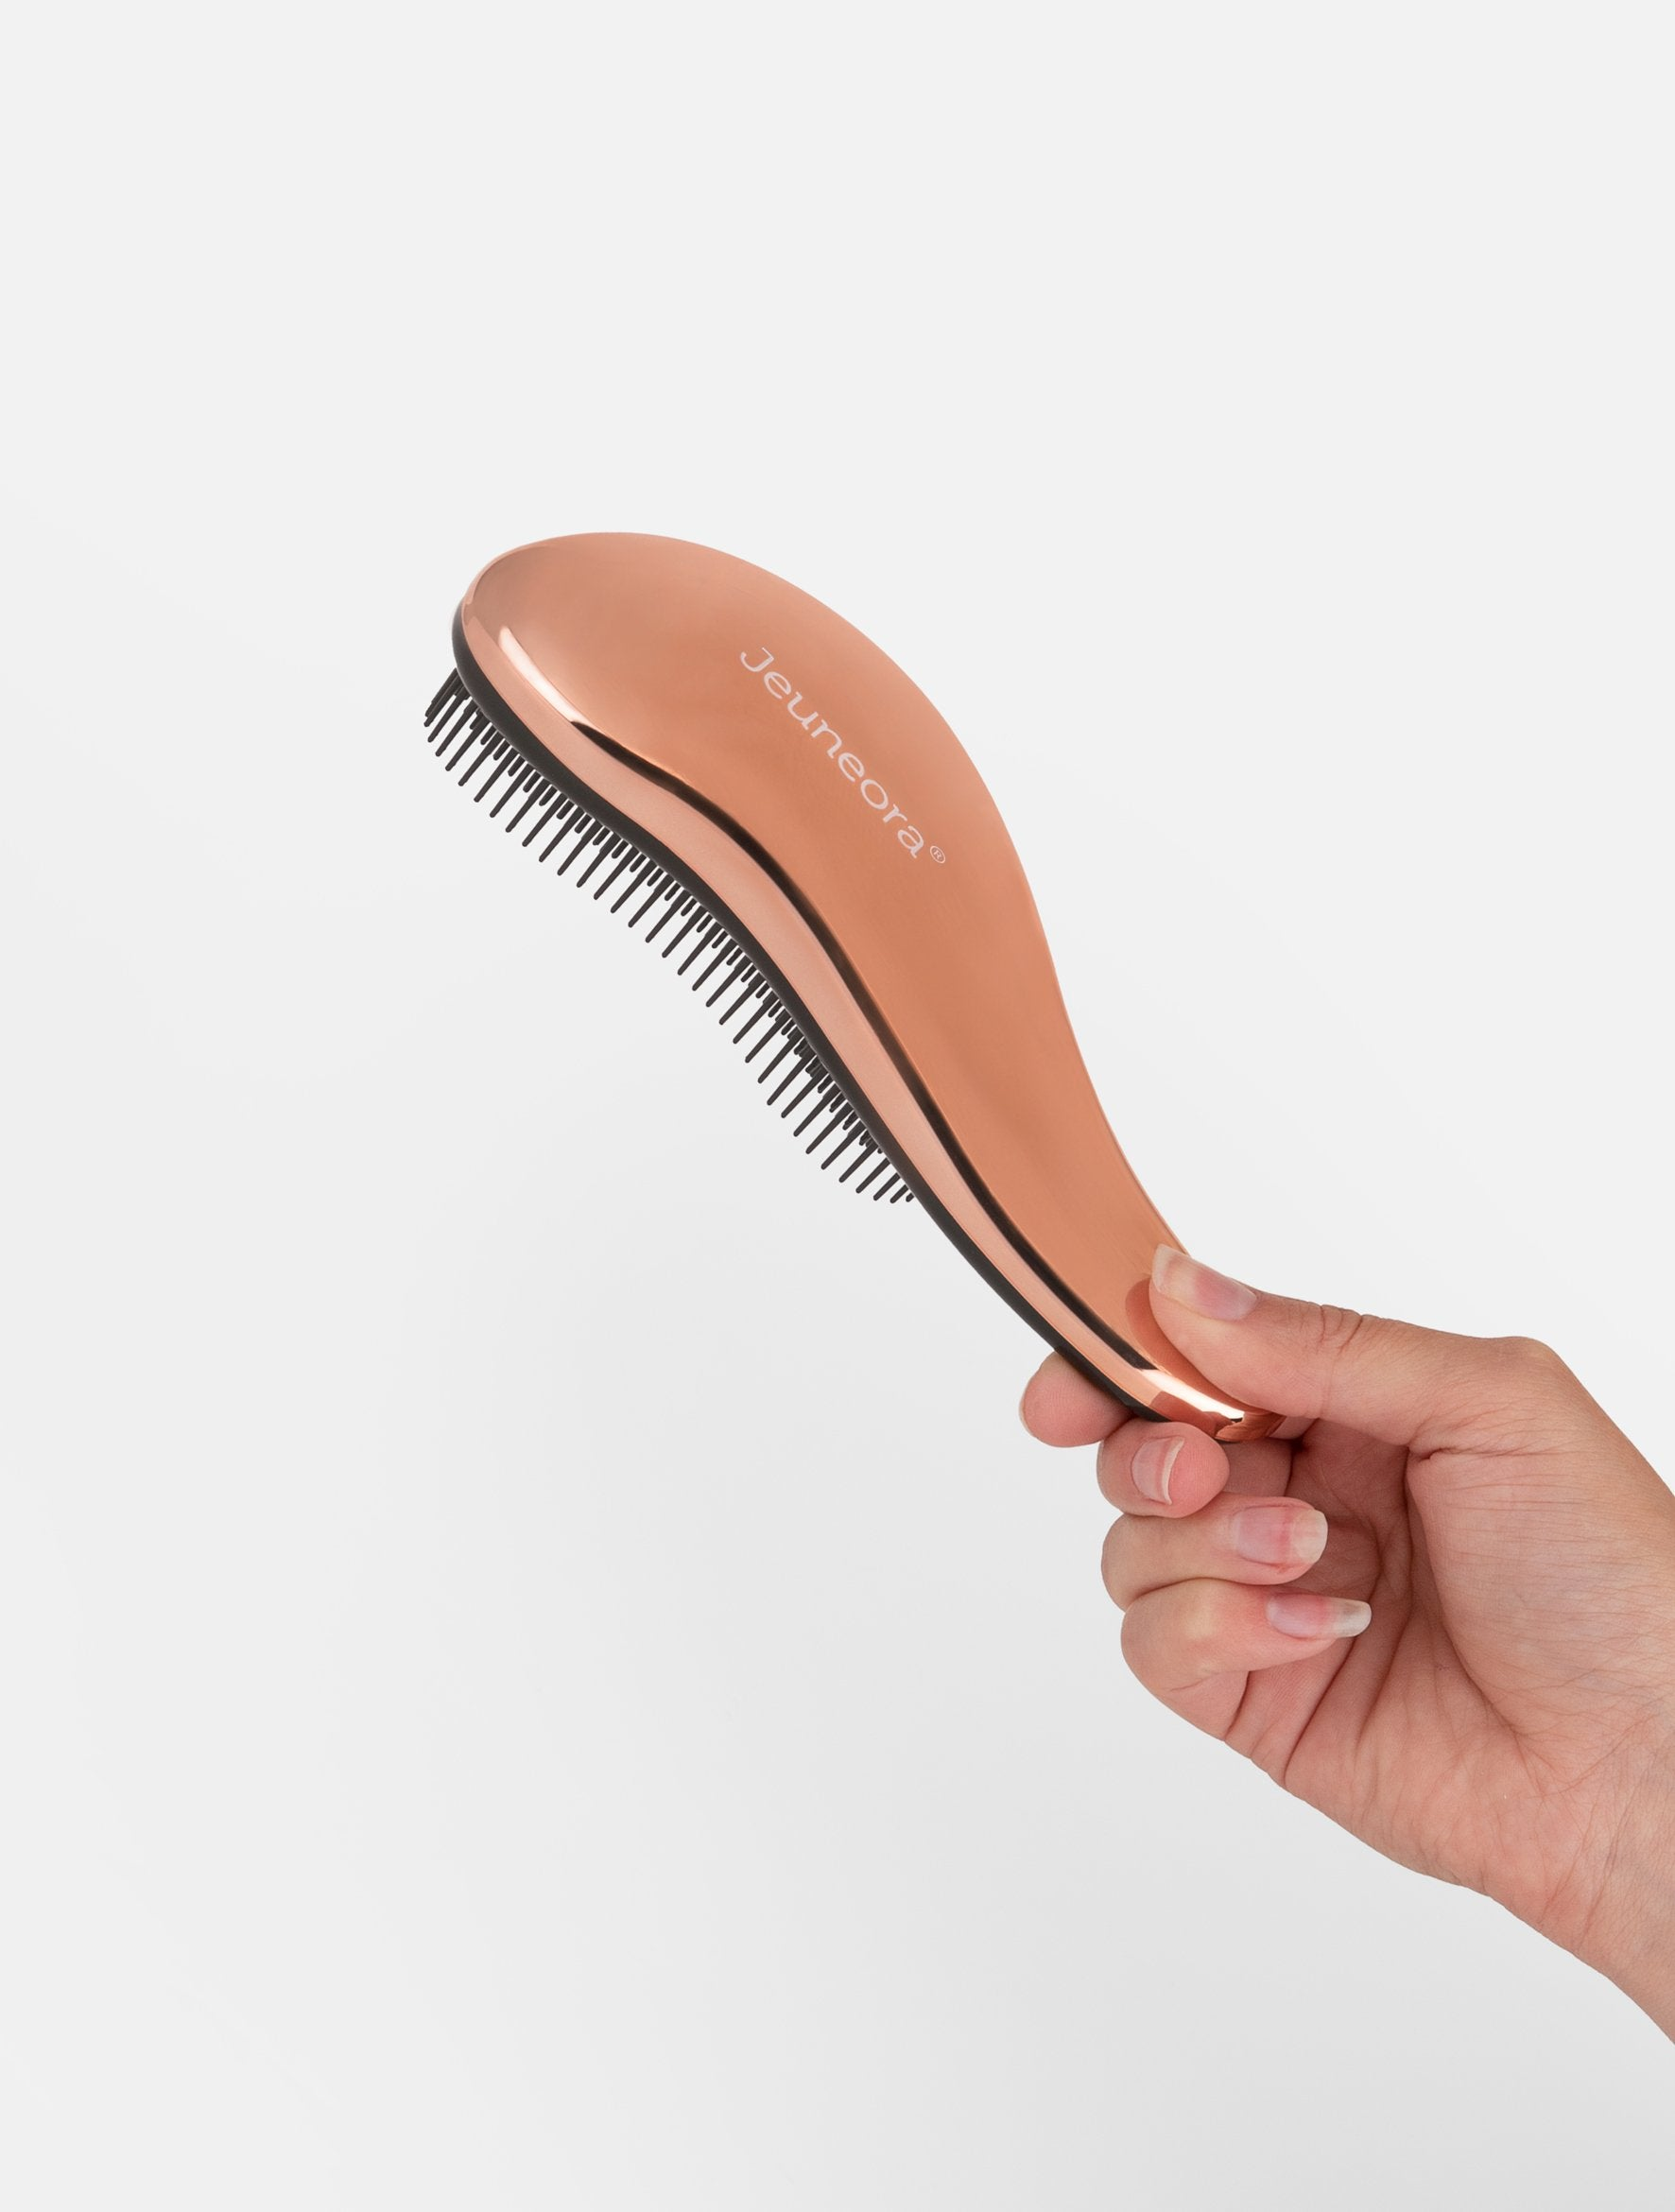 Jeuneora® Rose Gold Detangling Brush